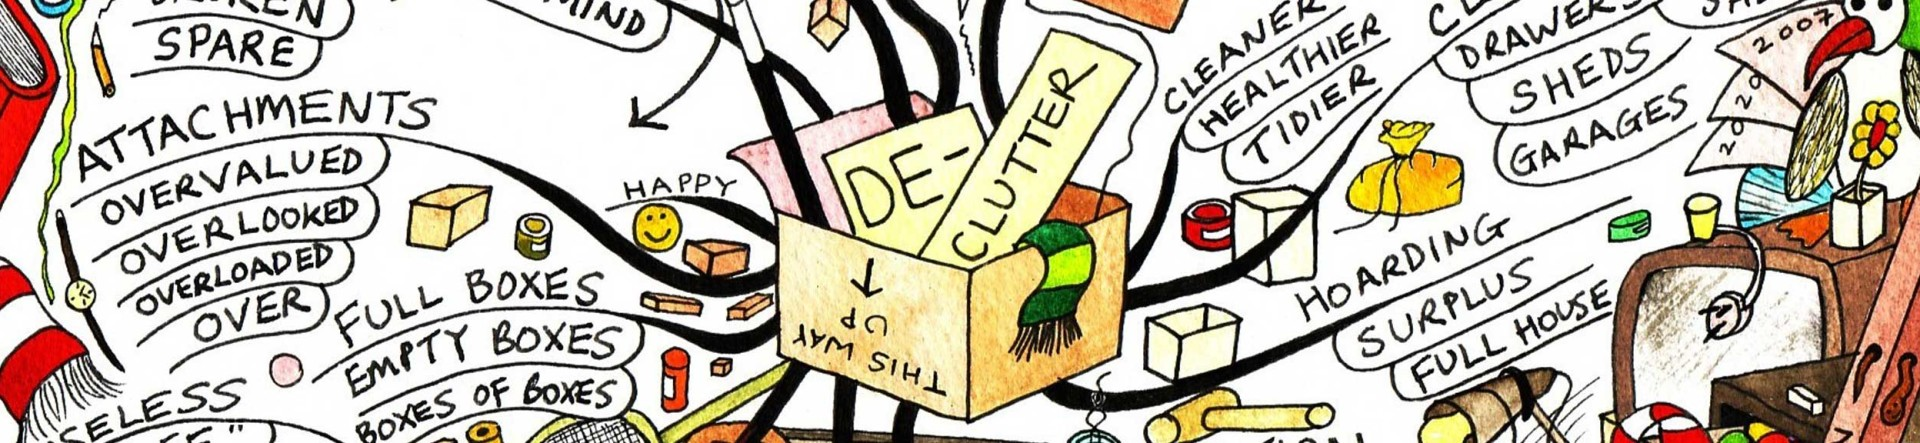 De-Clutter Your Life Using this Brilliant and Helpful Mind Map